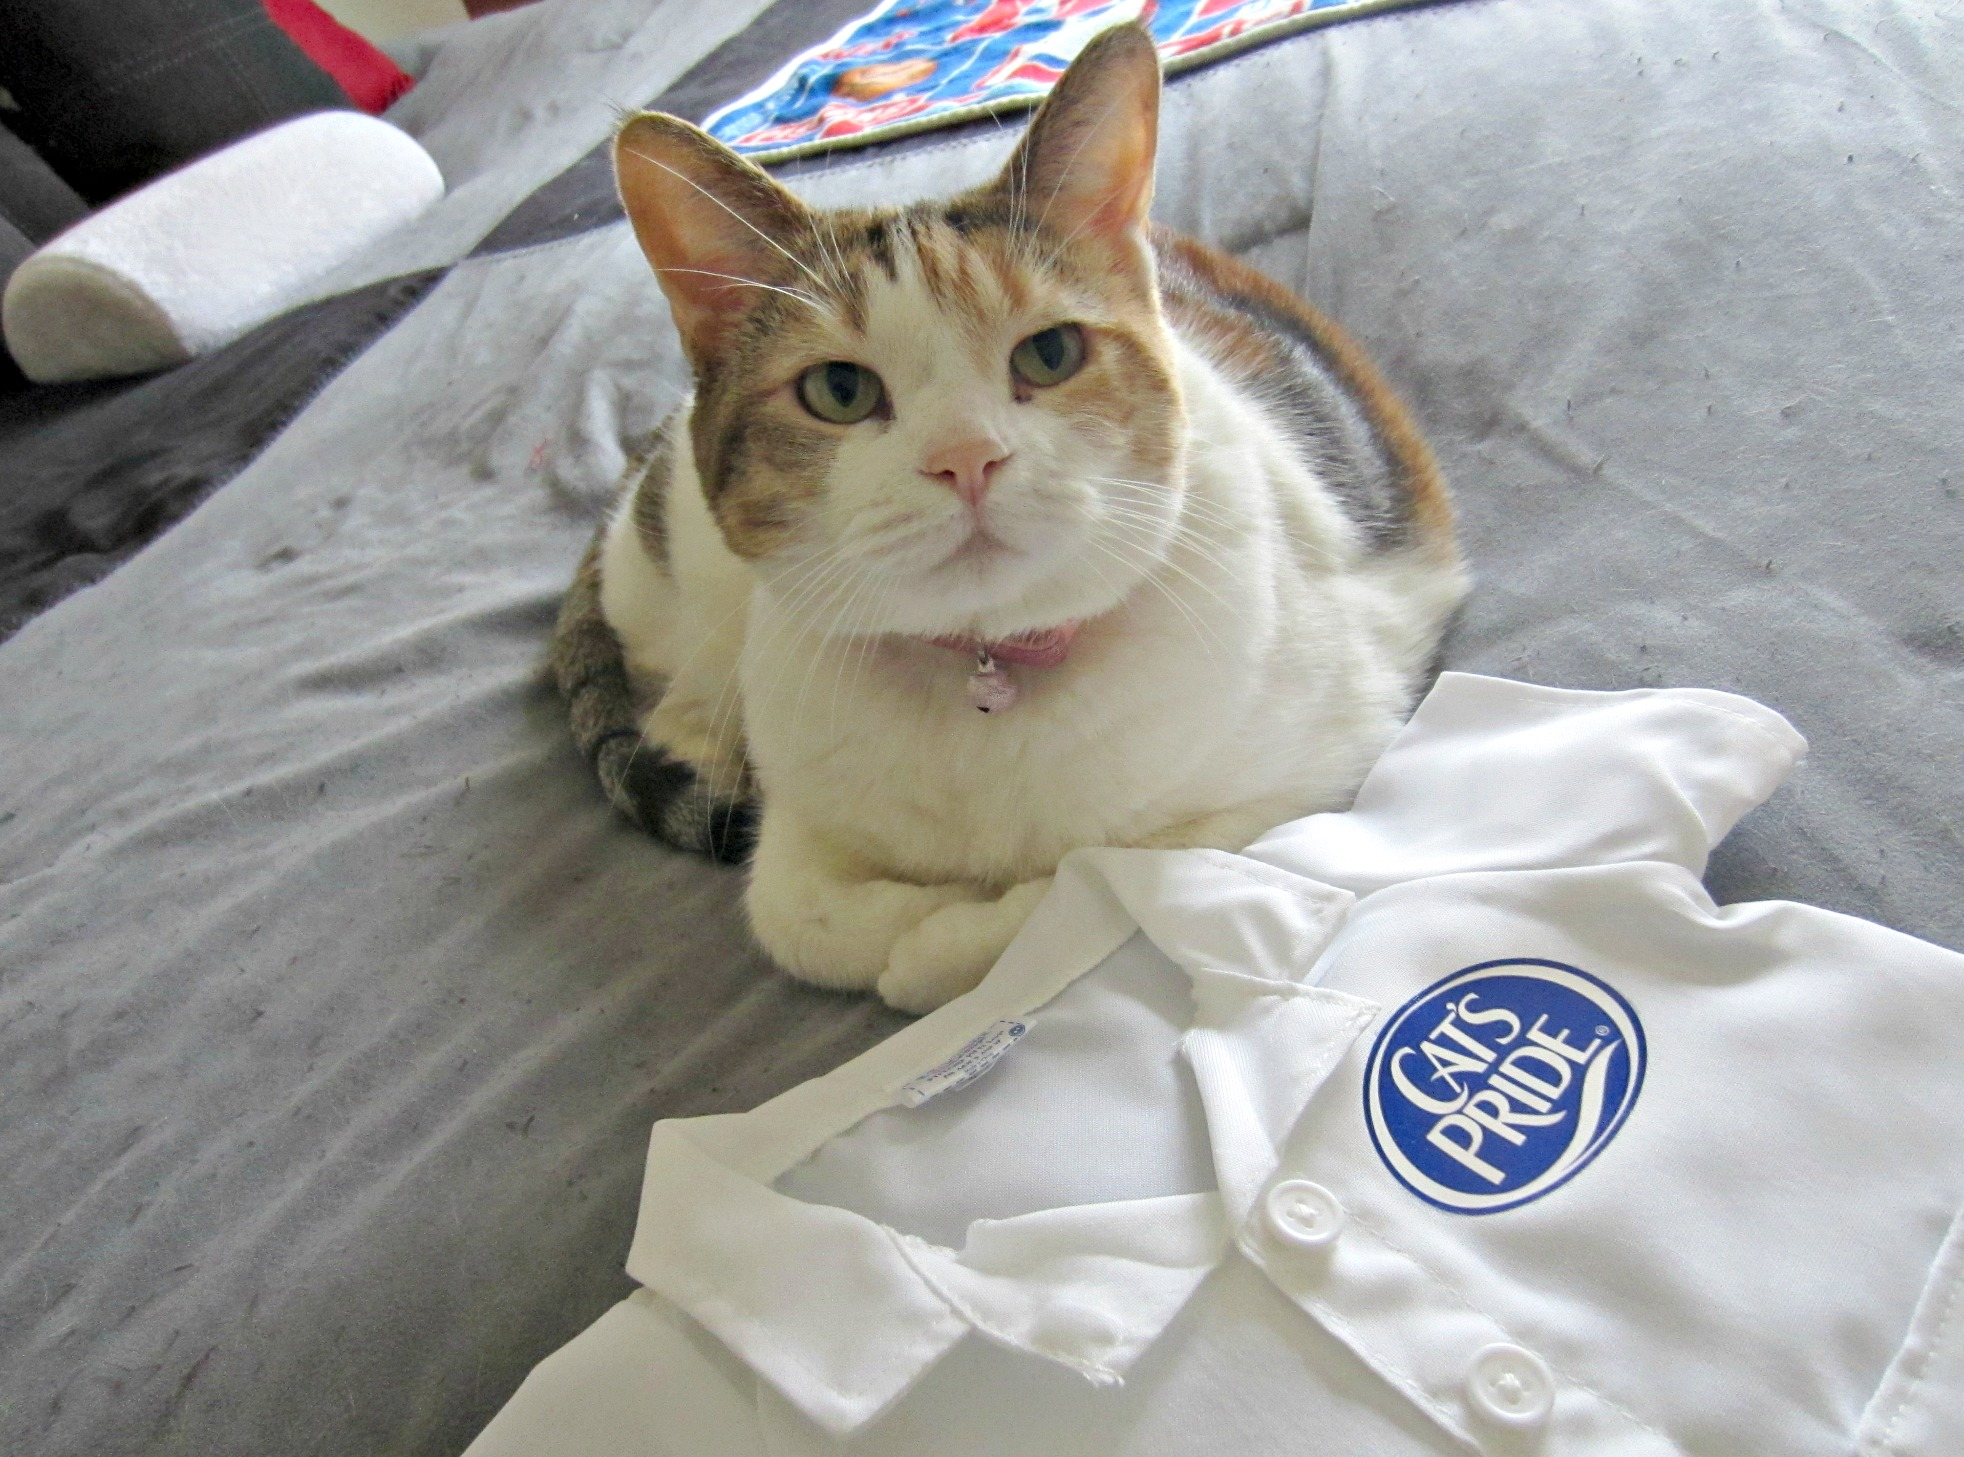 cali with cat's pride lab coat